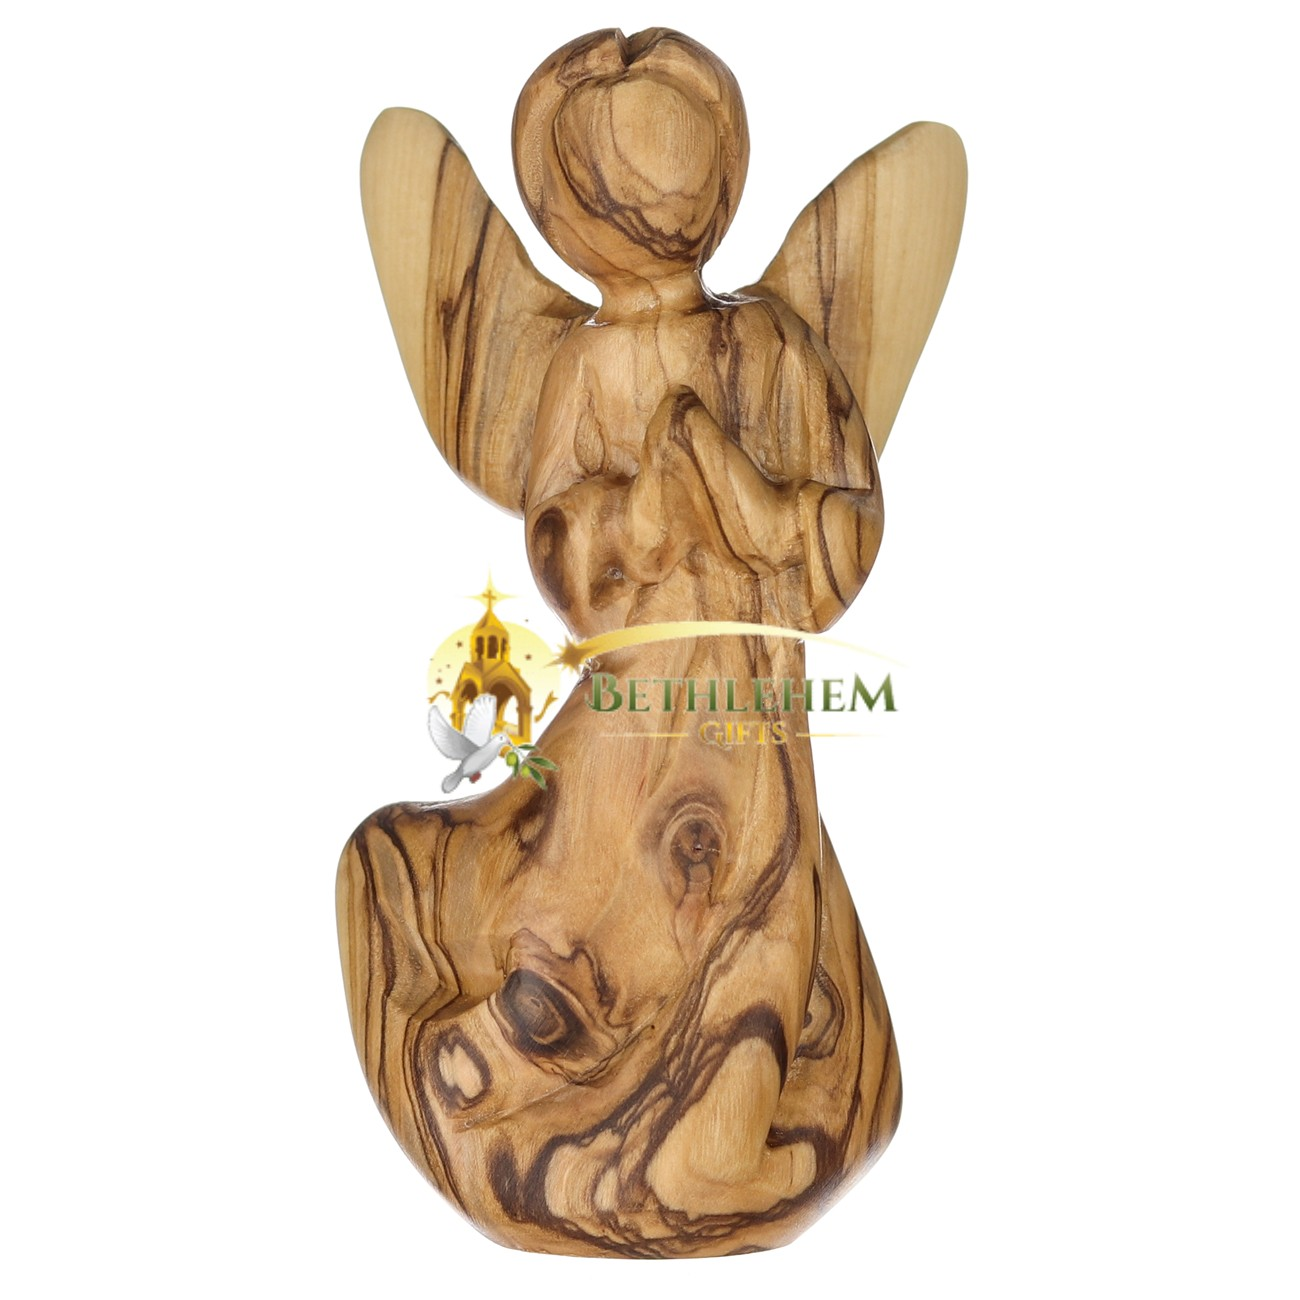 Olive Wood Handcrafted Wooden Angel from Bethlehem